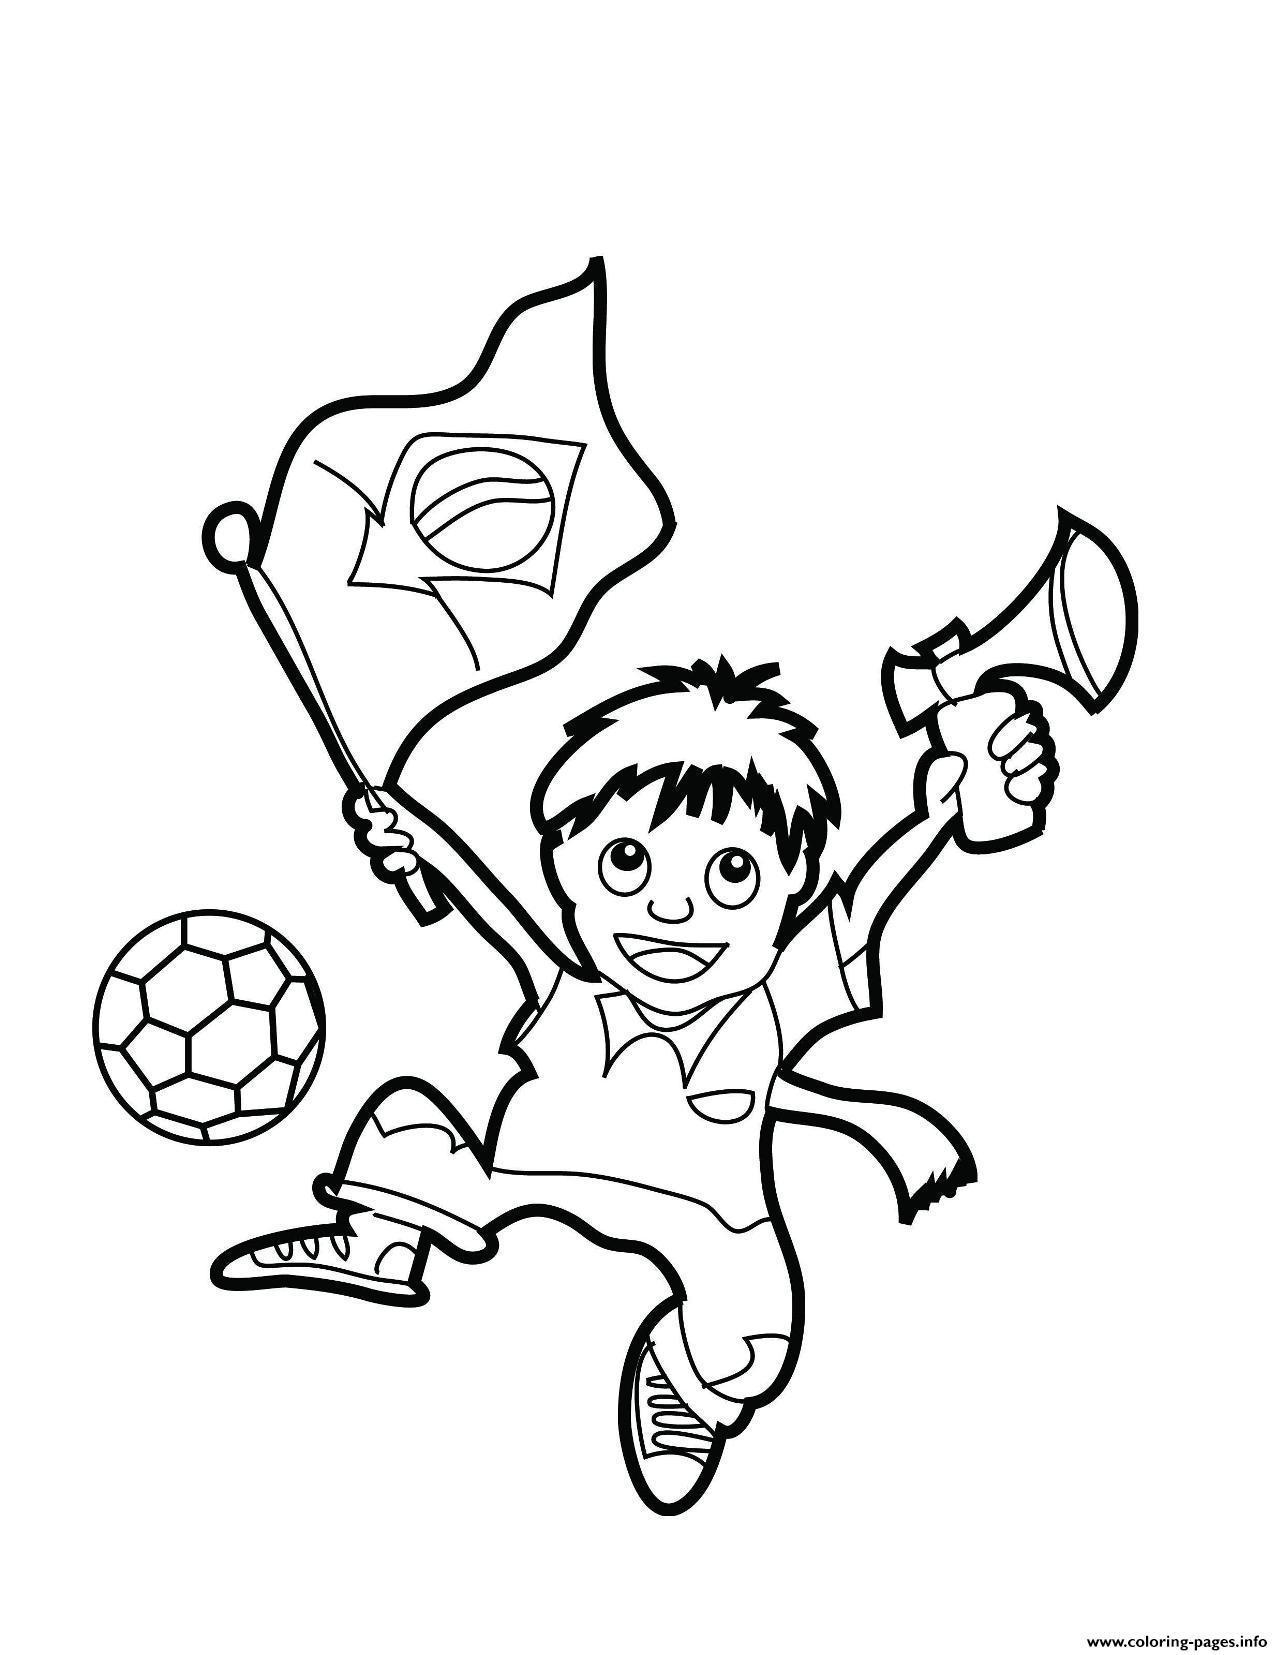 1283x1655 Flag Of Brazil Coloring Page